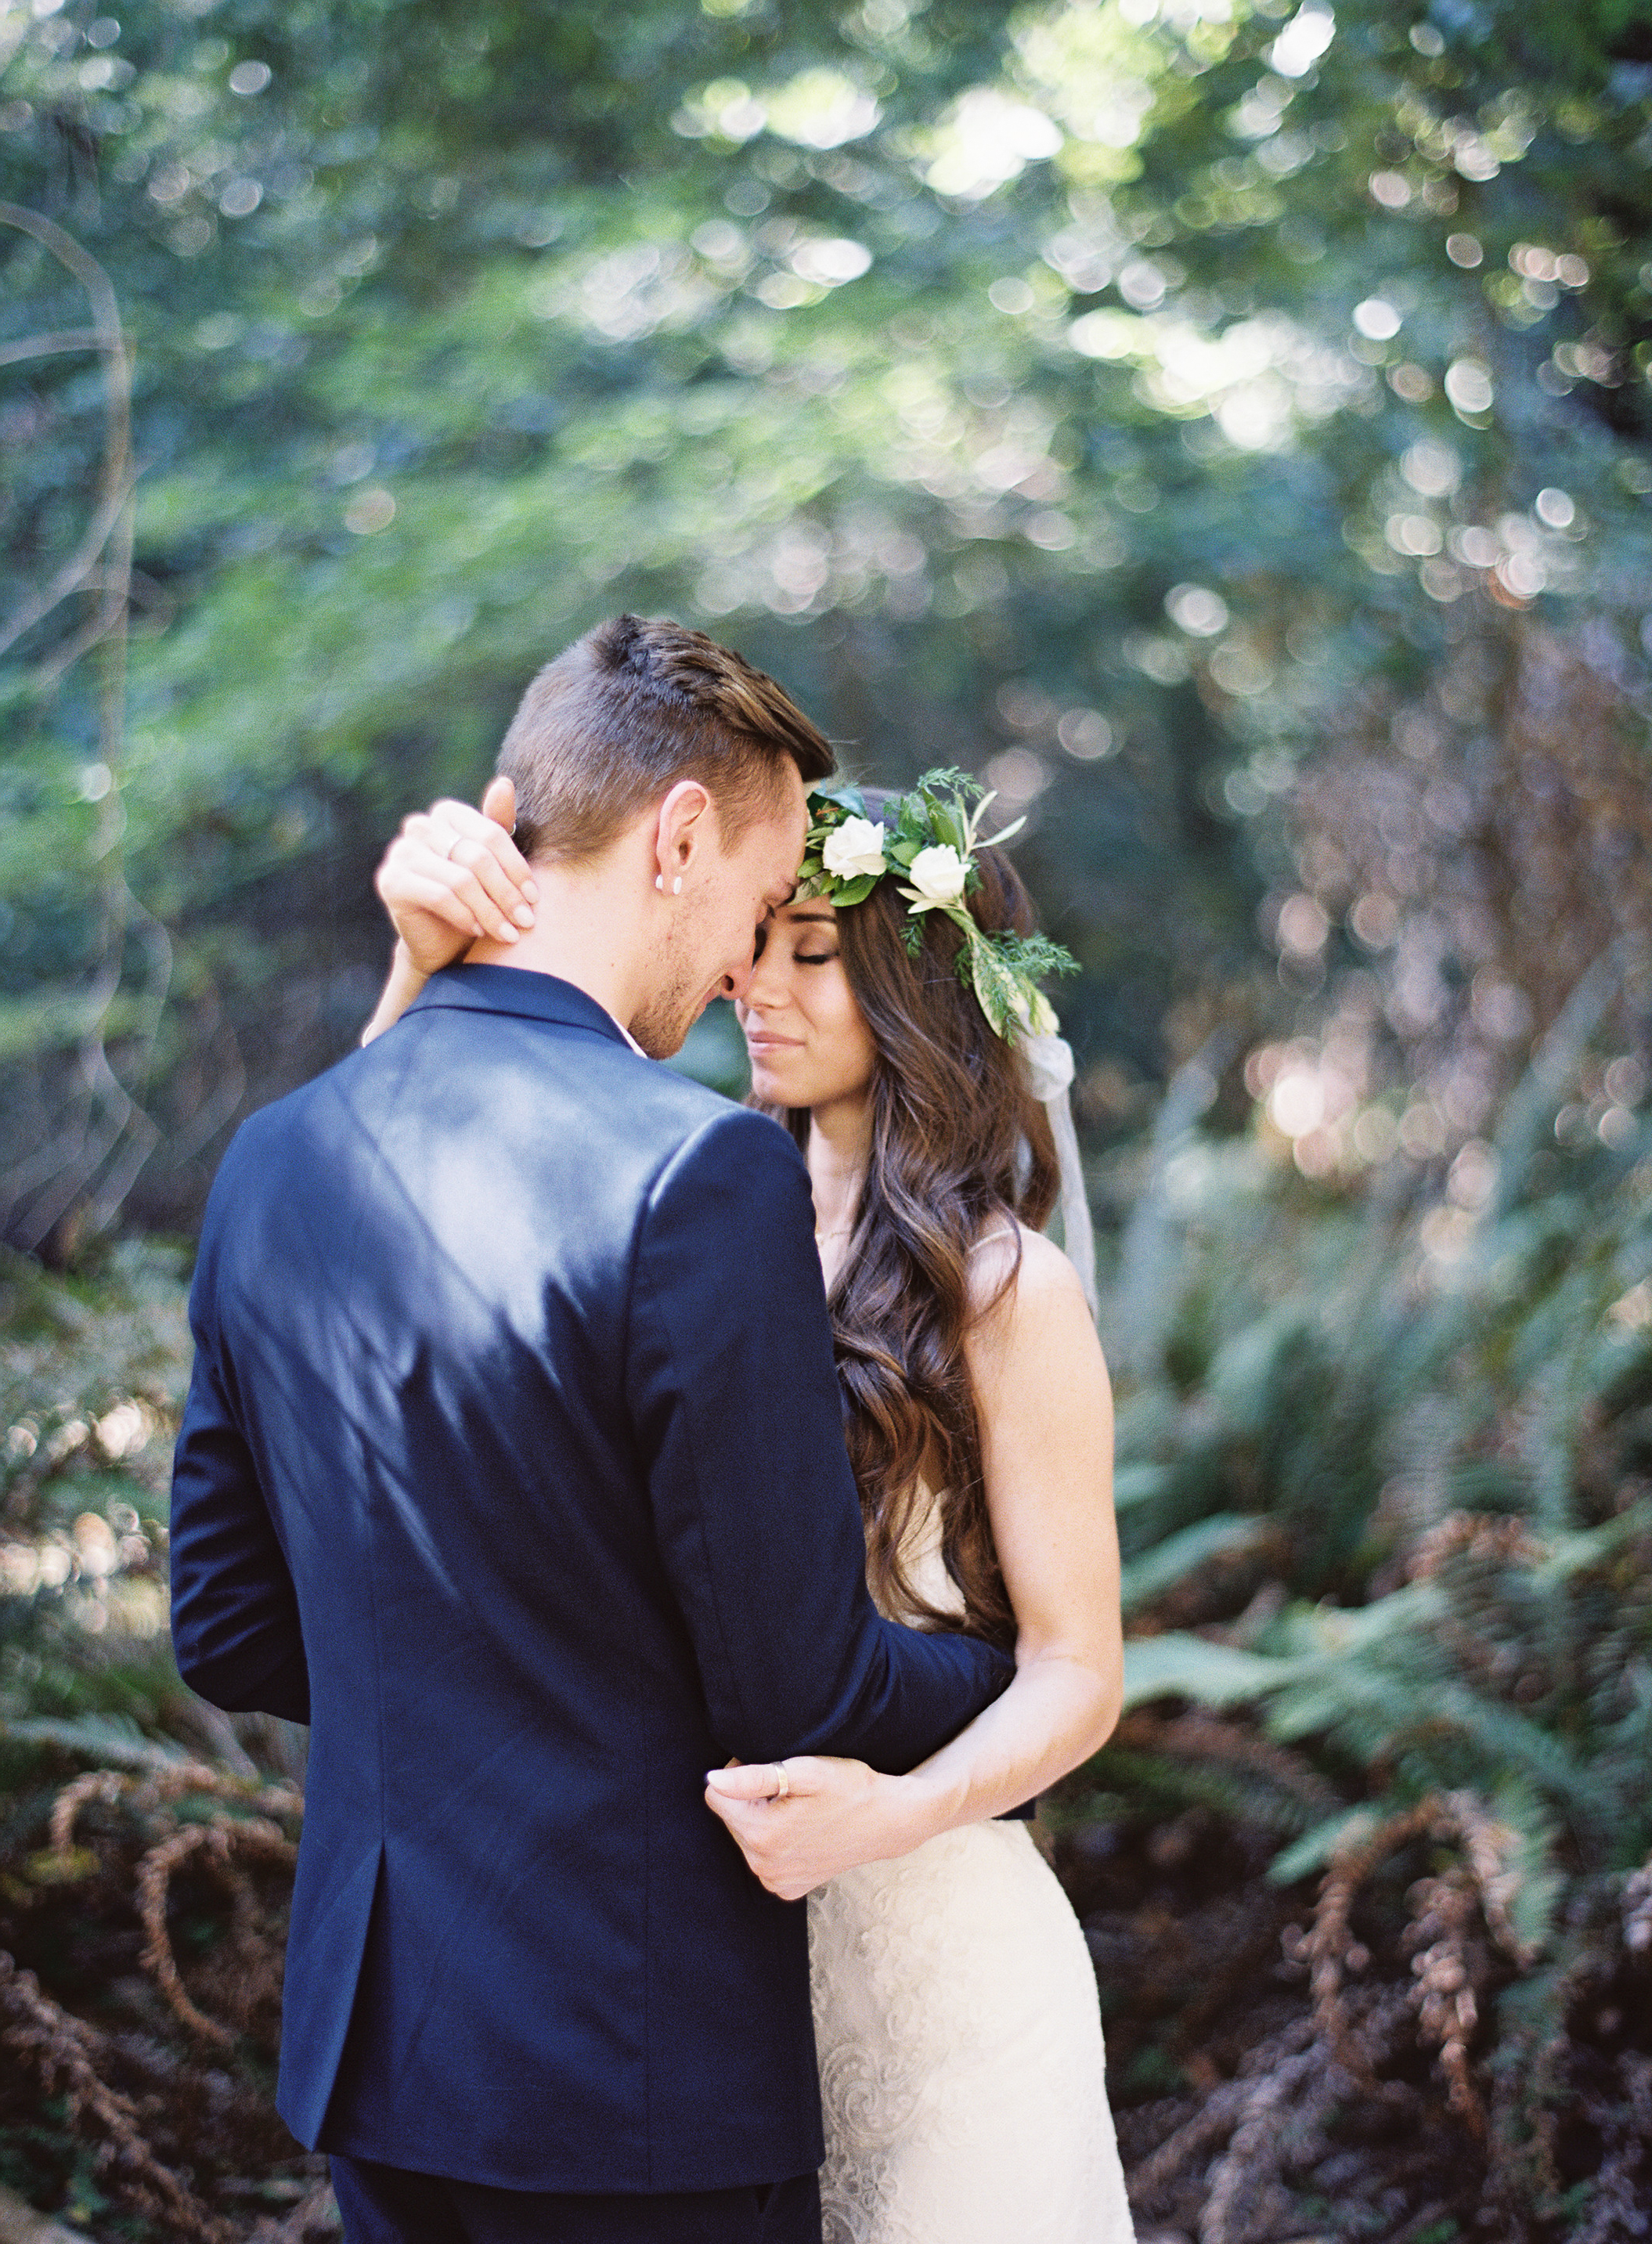 Meghan Mehan Photography | California Wedding Photographer | Napa California Wedding Photographer 109.jpg